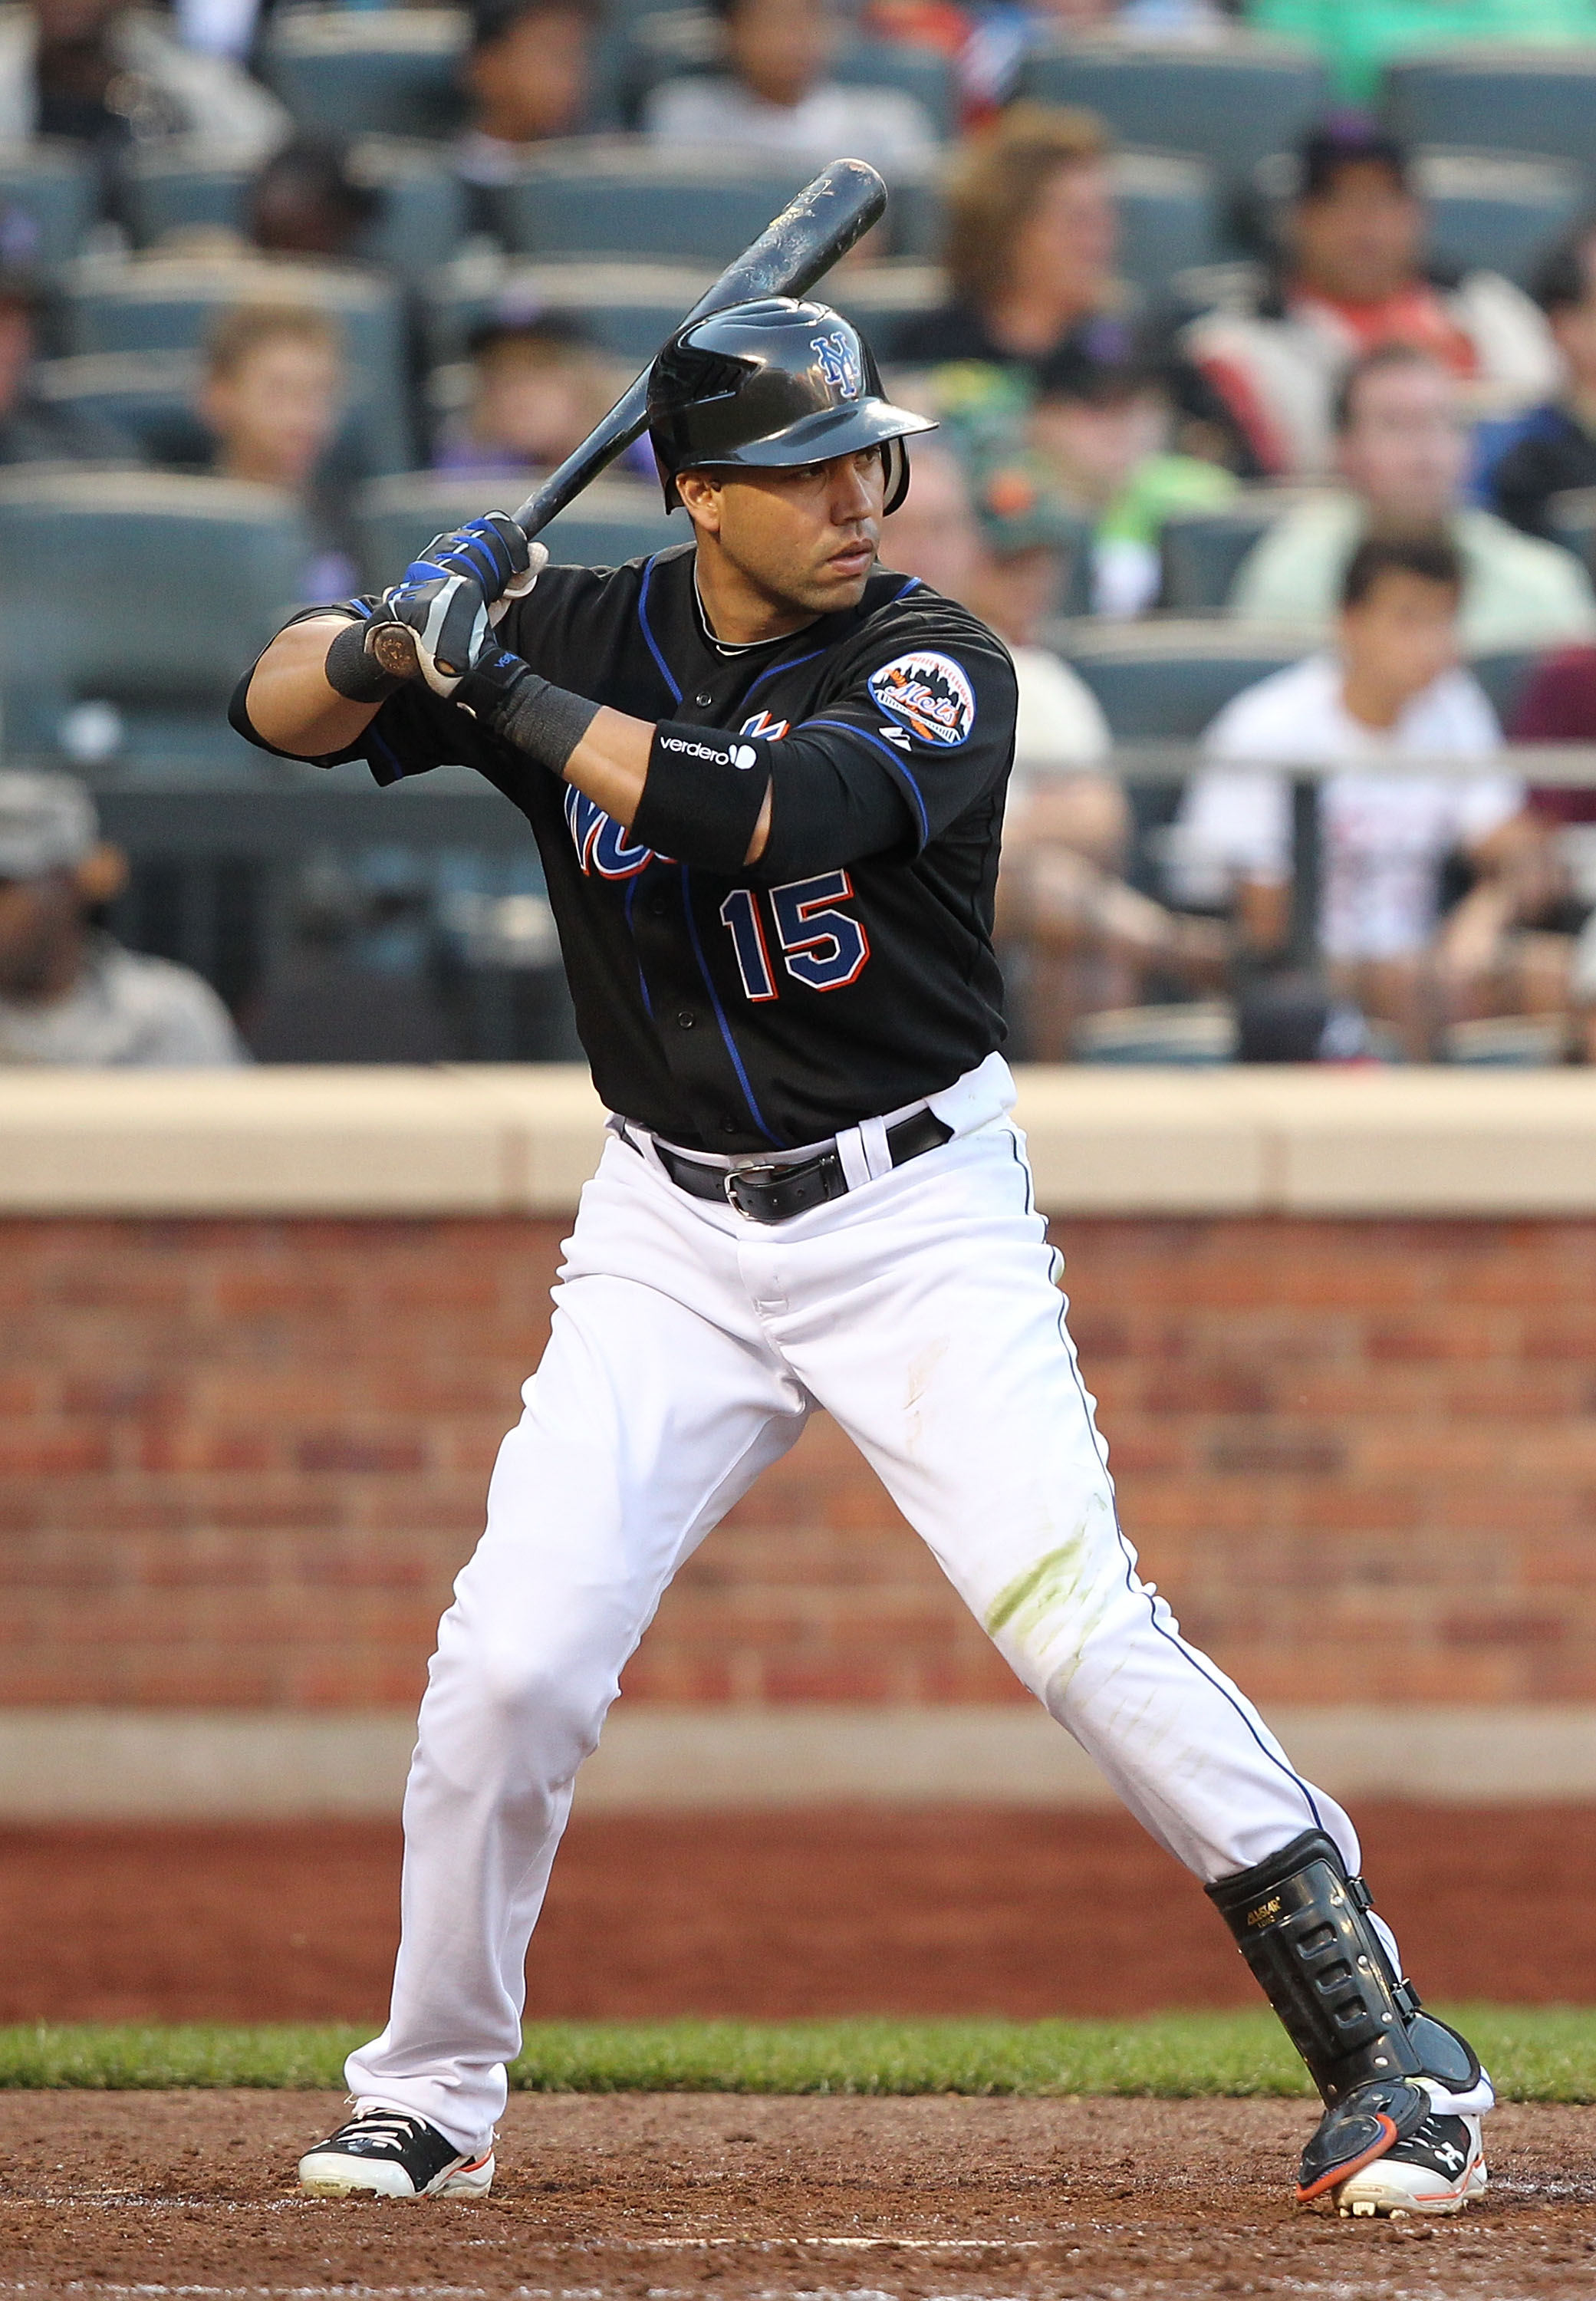 NEW YORK - SEPTEMBER 18:  Carlos Beltran #15 of the New York Mets in action against the Atlanta Braves during their game on September 18, 2010 at Citi Field in the Flushing neighborhood of the Queens borough of New York City.  (Photo by Al Bello/Getty Ima